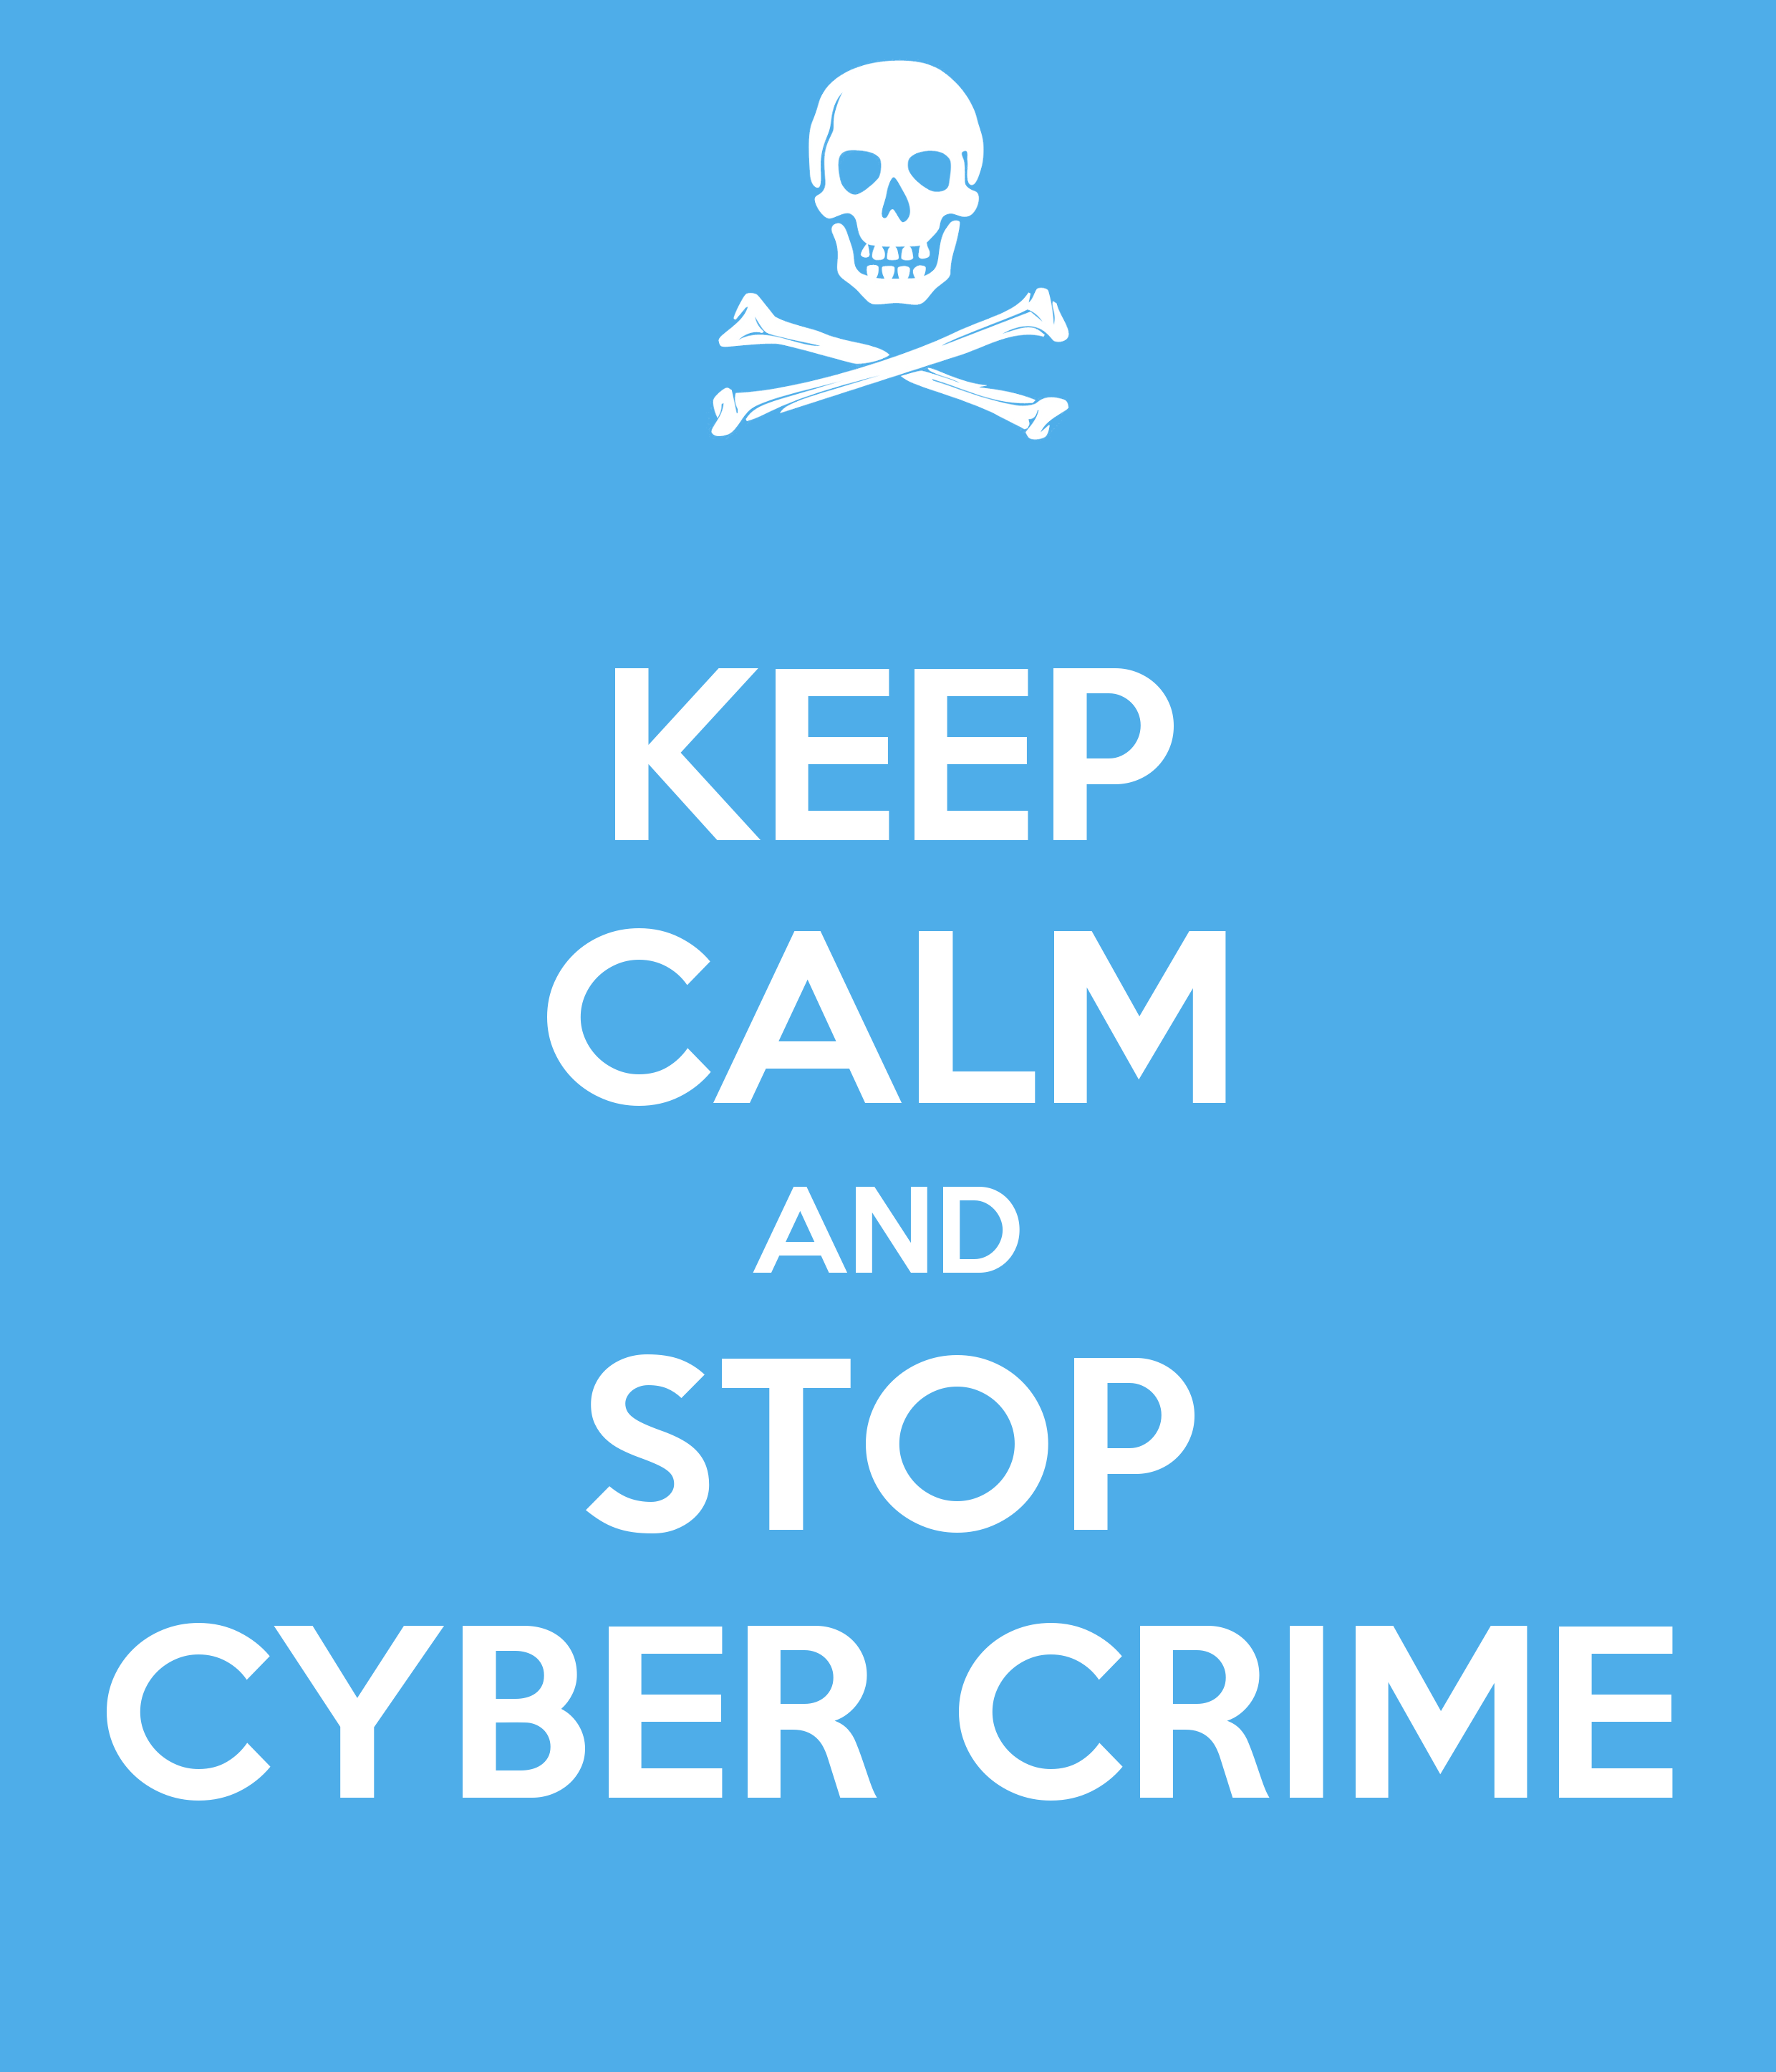 cyber torts and cyber crime Cyberstalking has been mentioned as a cyber-tort and as a cyber-crime the extent and degree of the act decide whether it is to be actionable in a civil or criminal court the causes of.